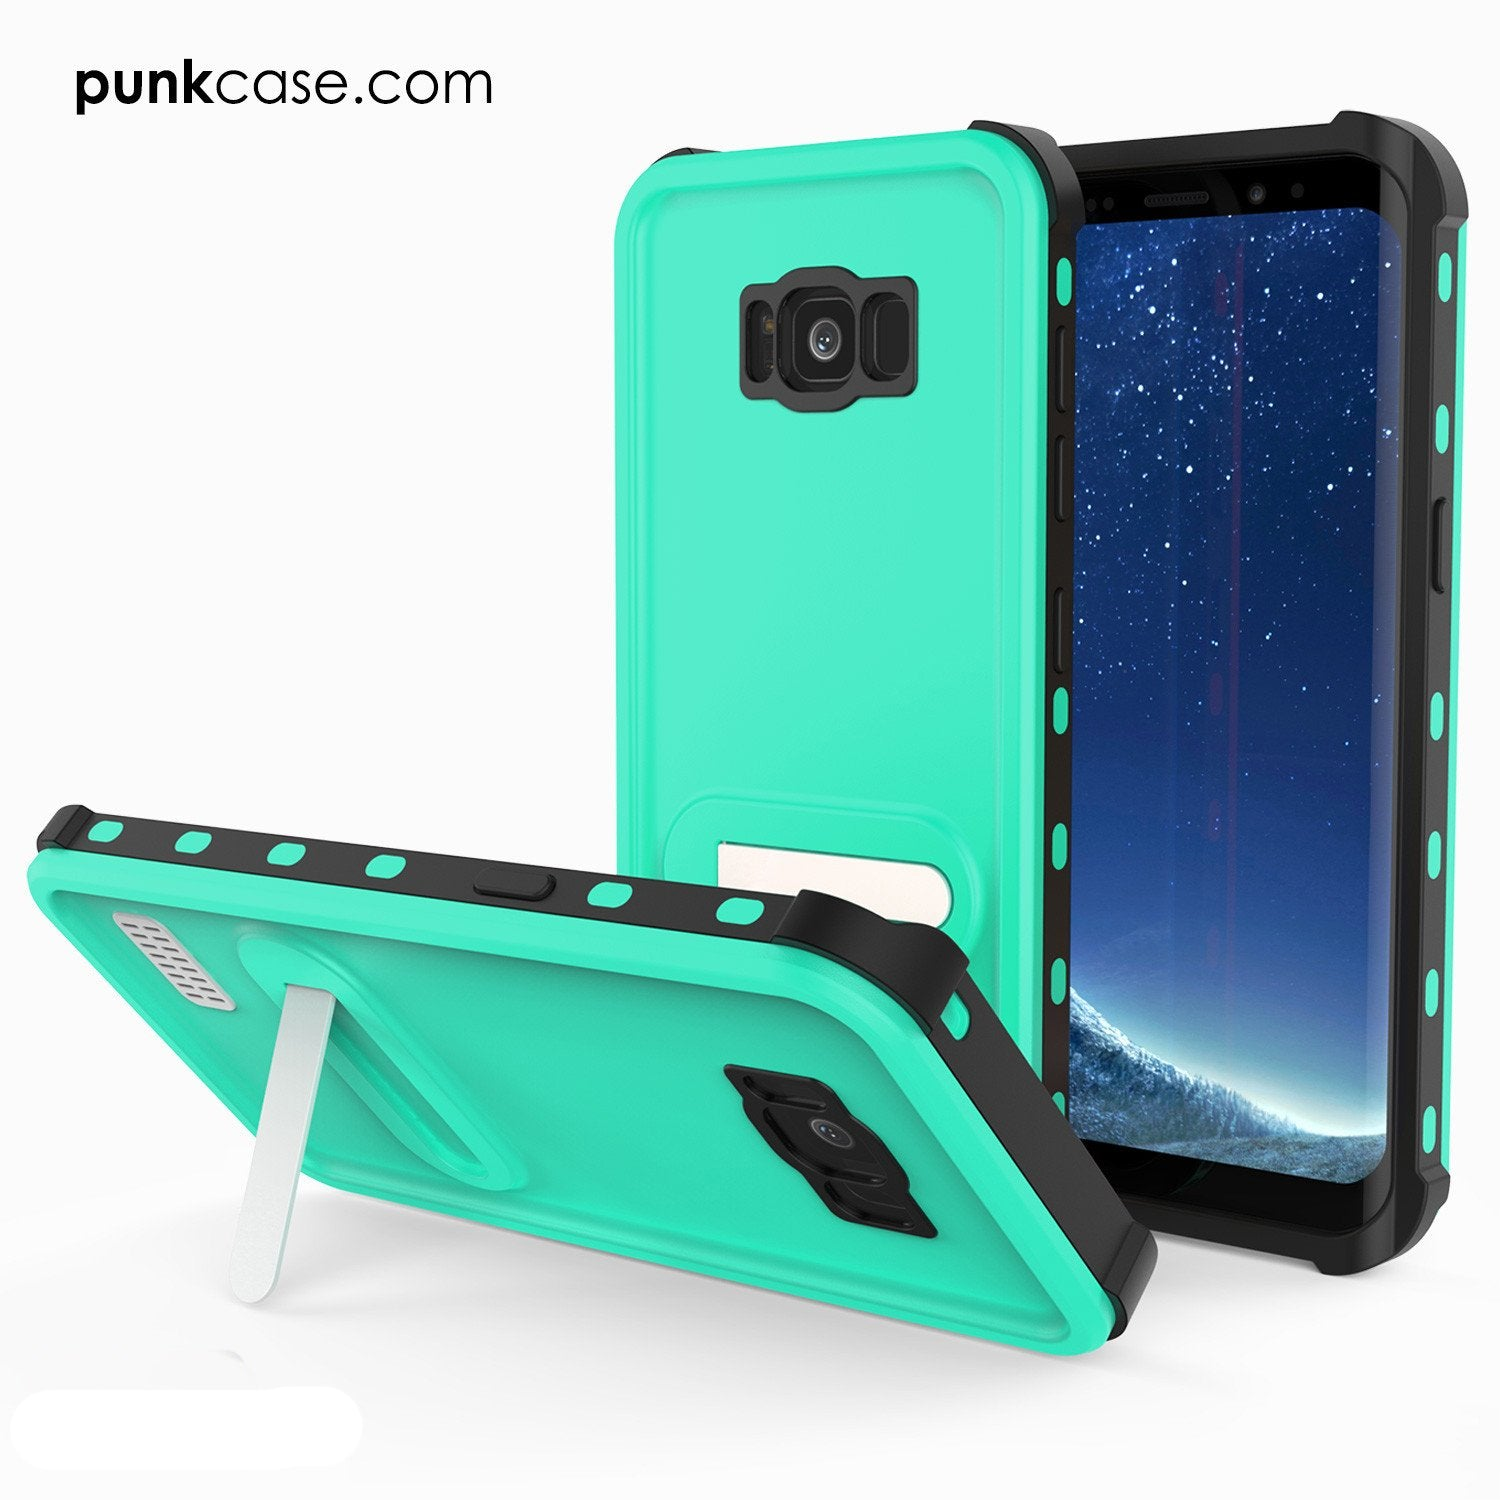 Galaxy S8 Waterproof Case, Punkcase KickStud Series Armor Cover[Teal]